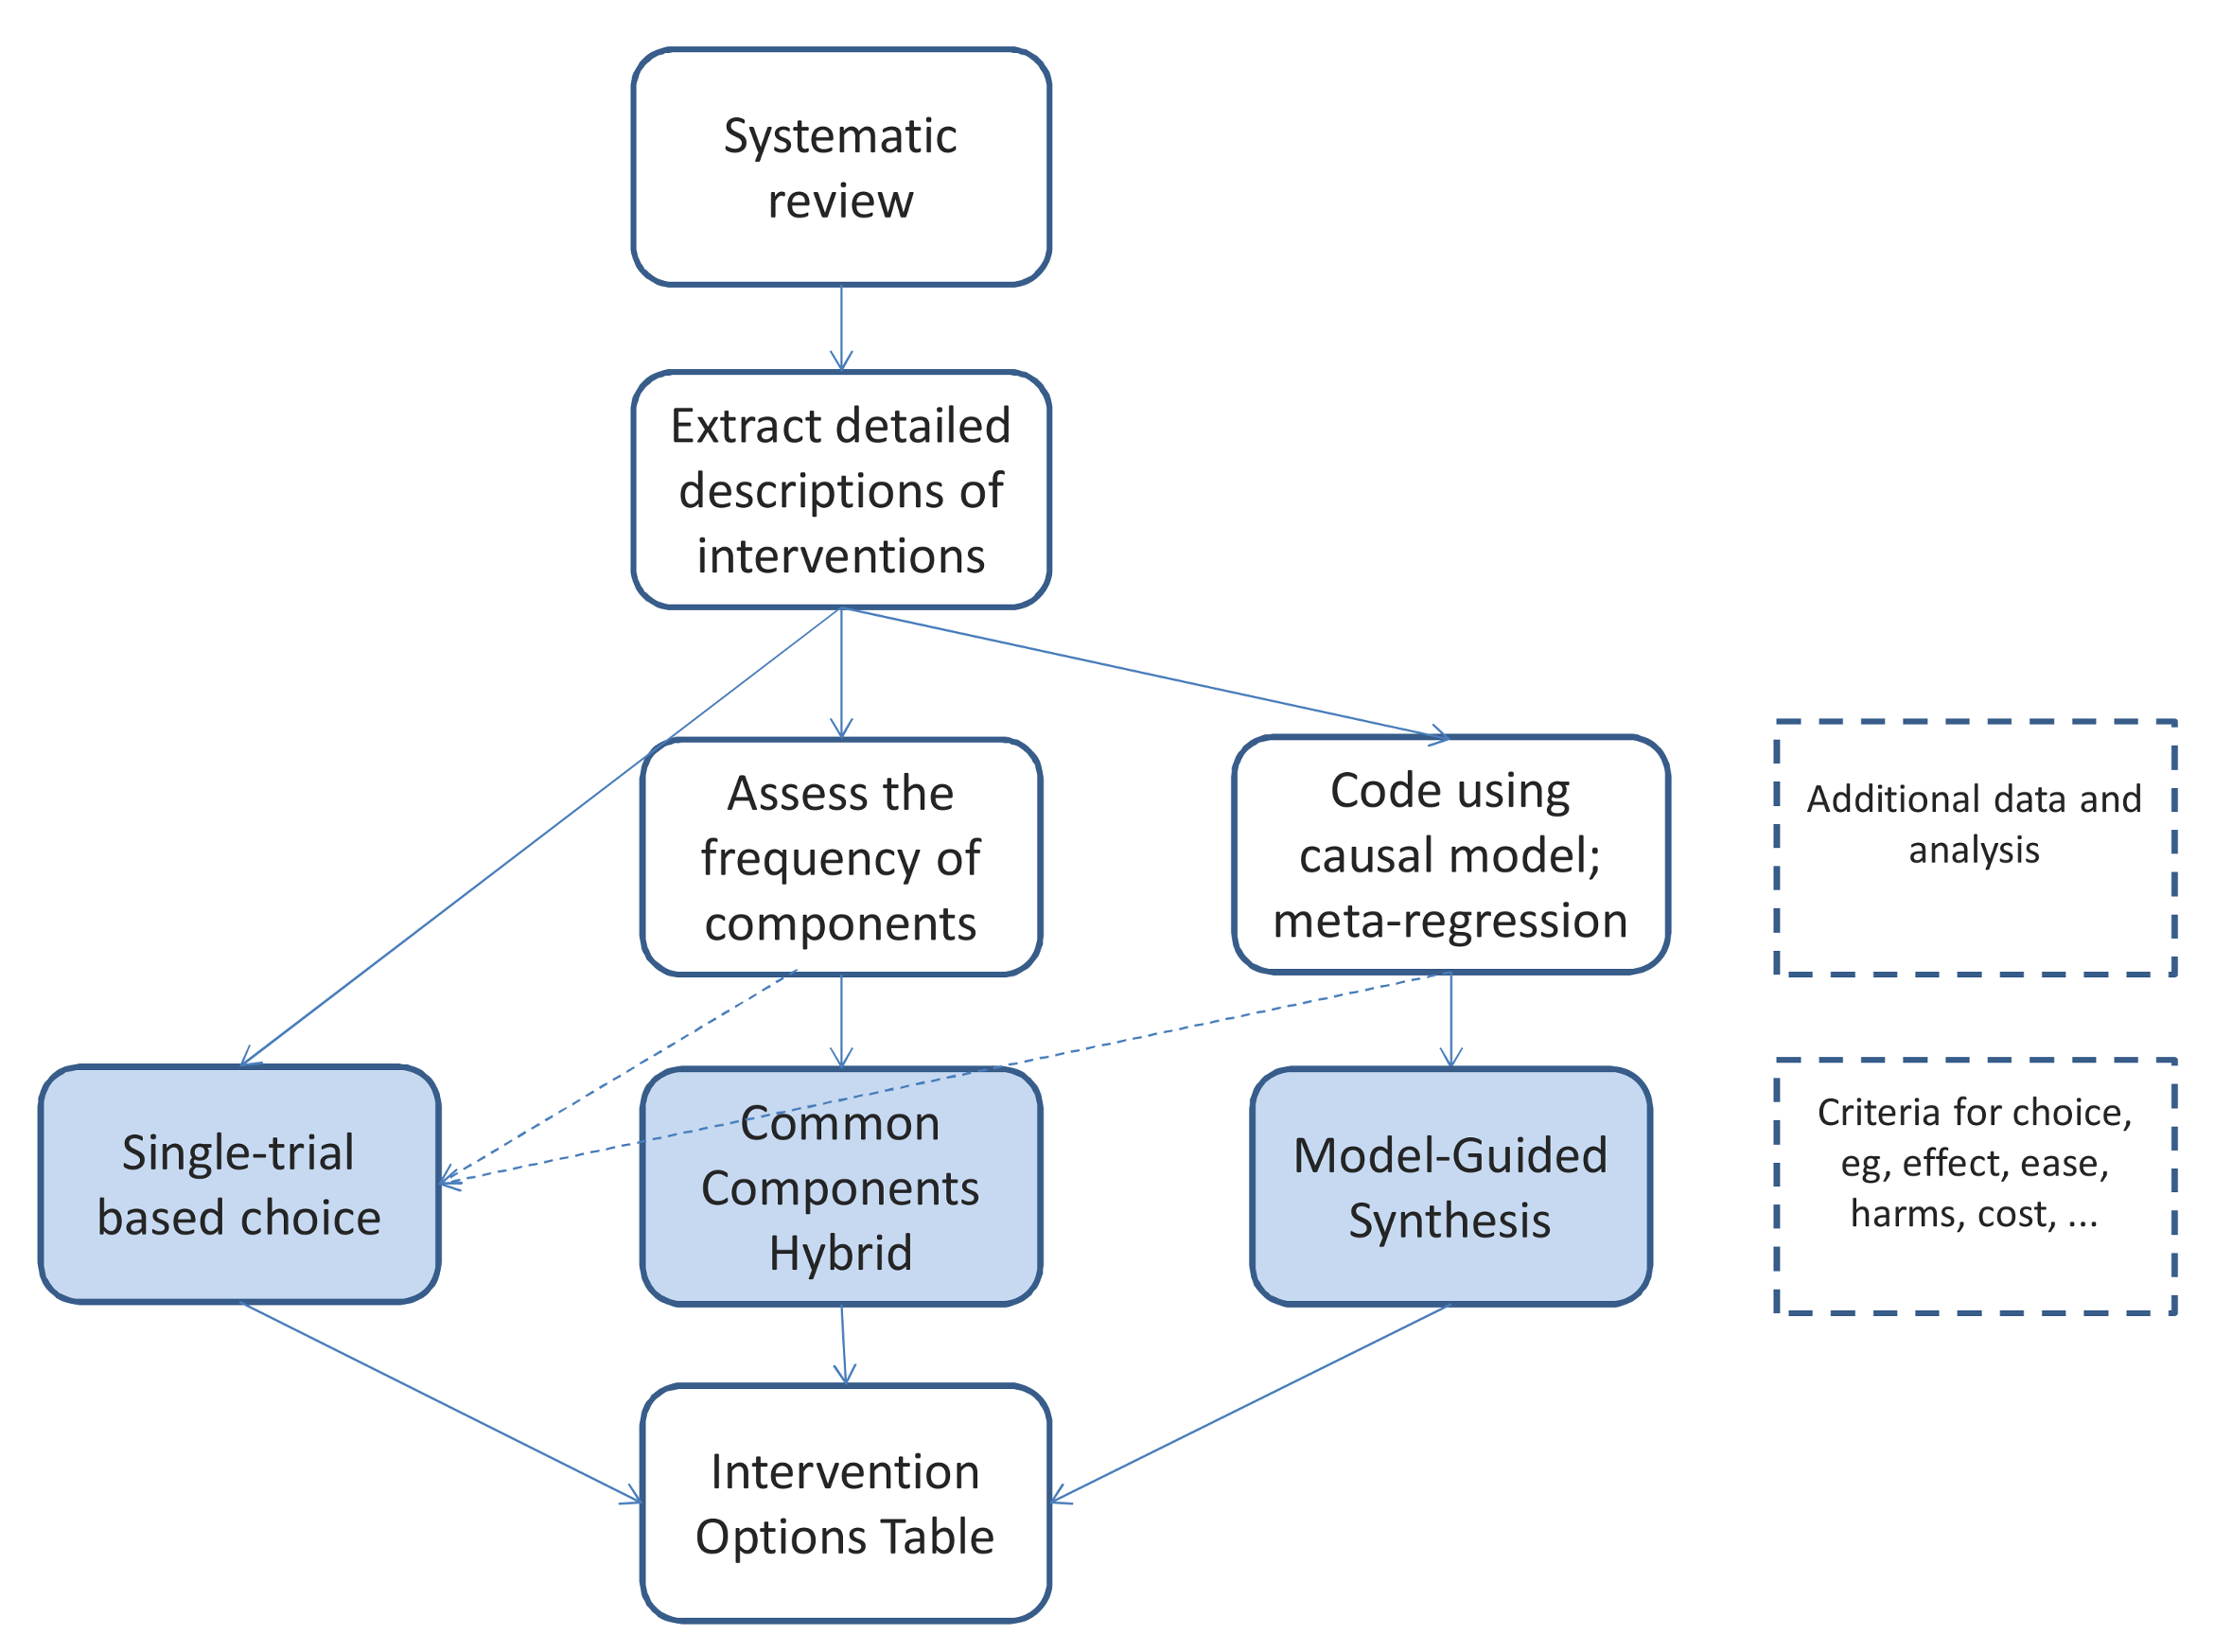 The steps from systematic review to a specific version of an intervention, showing the three basic approaches.